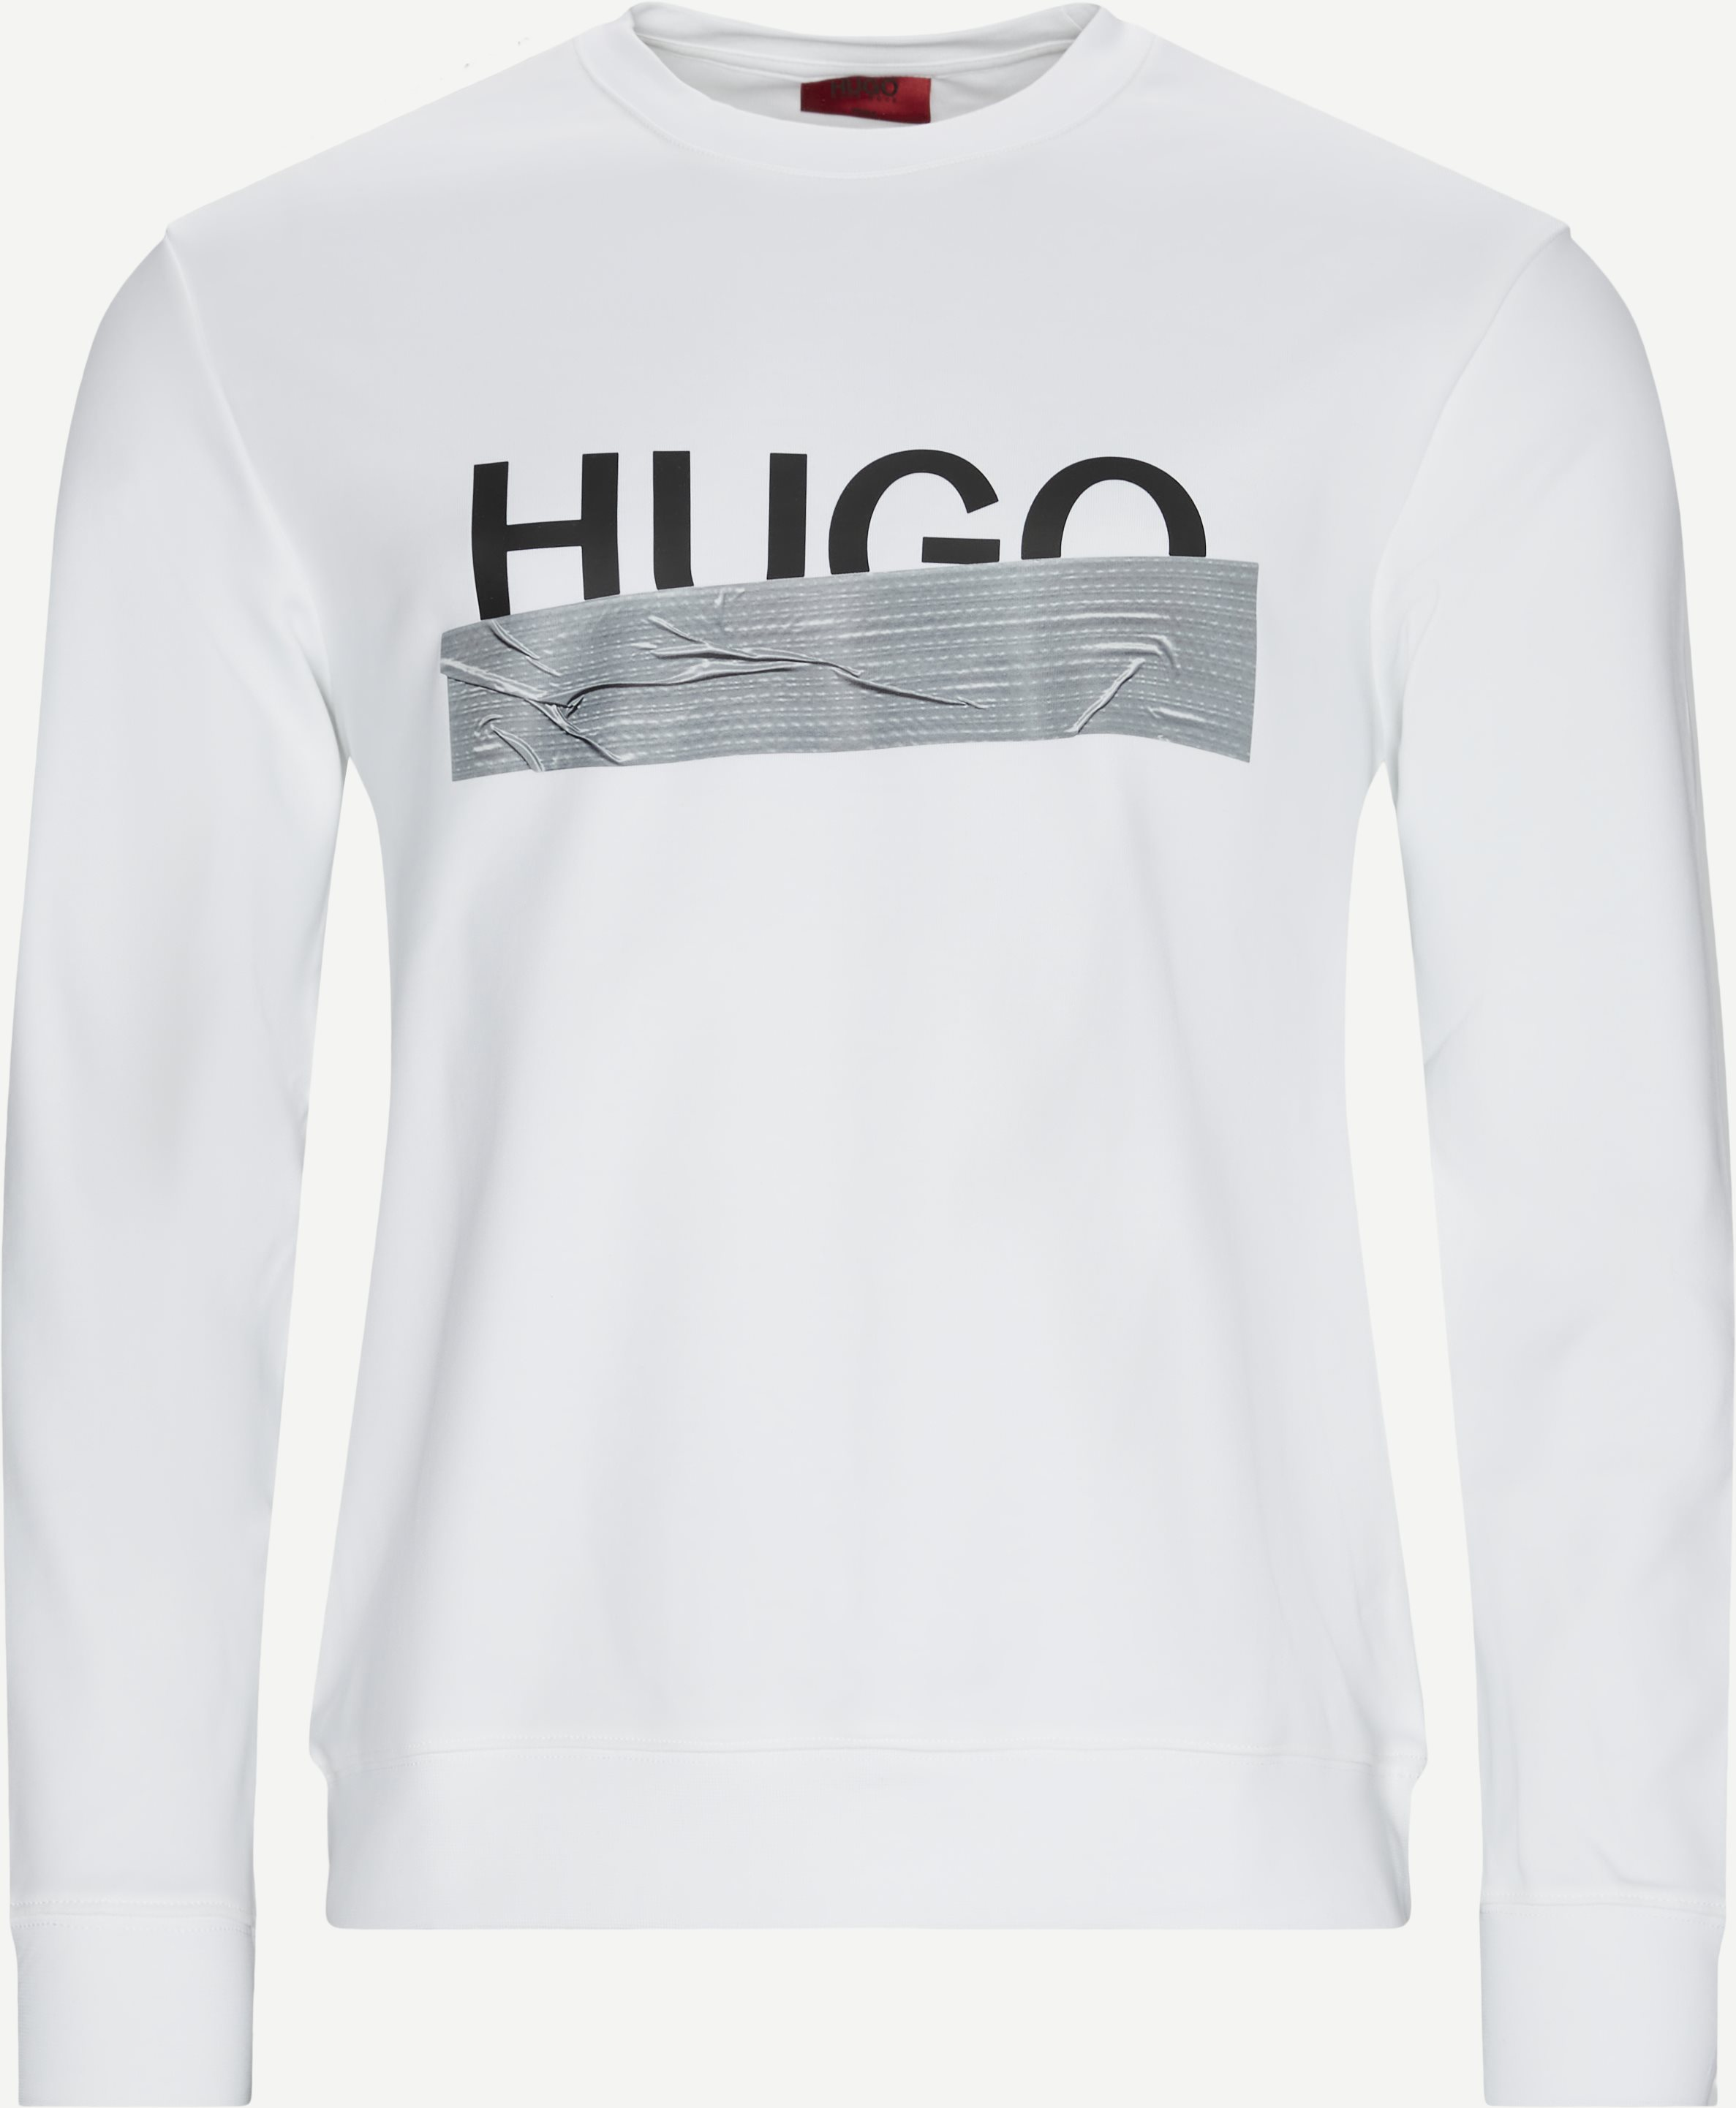 Sweatshirts - Regular - Weiß